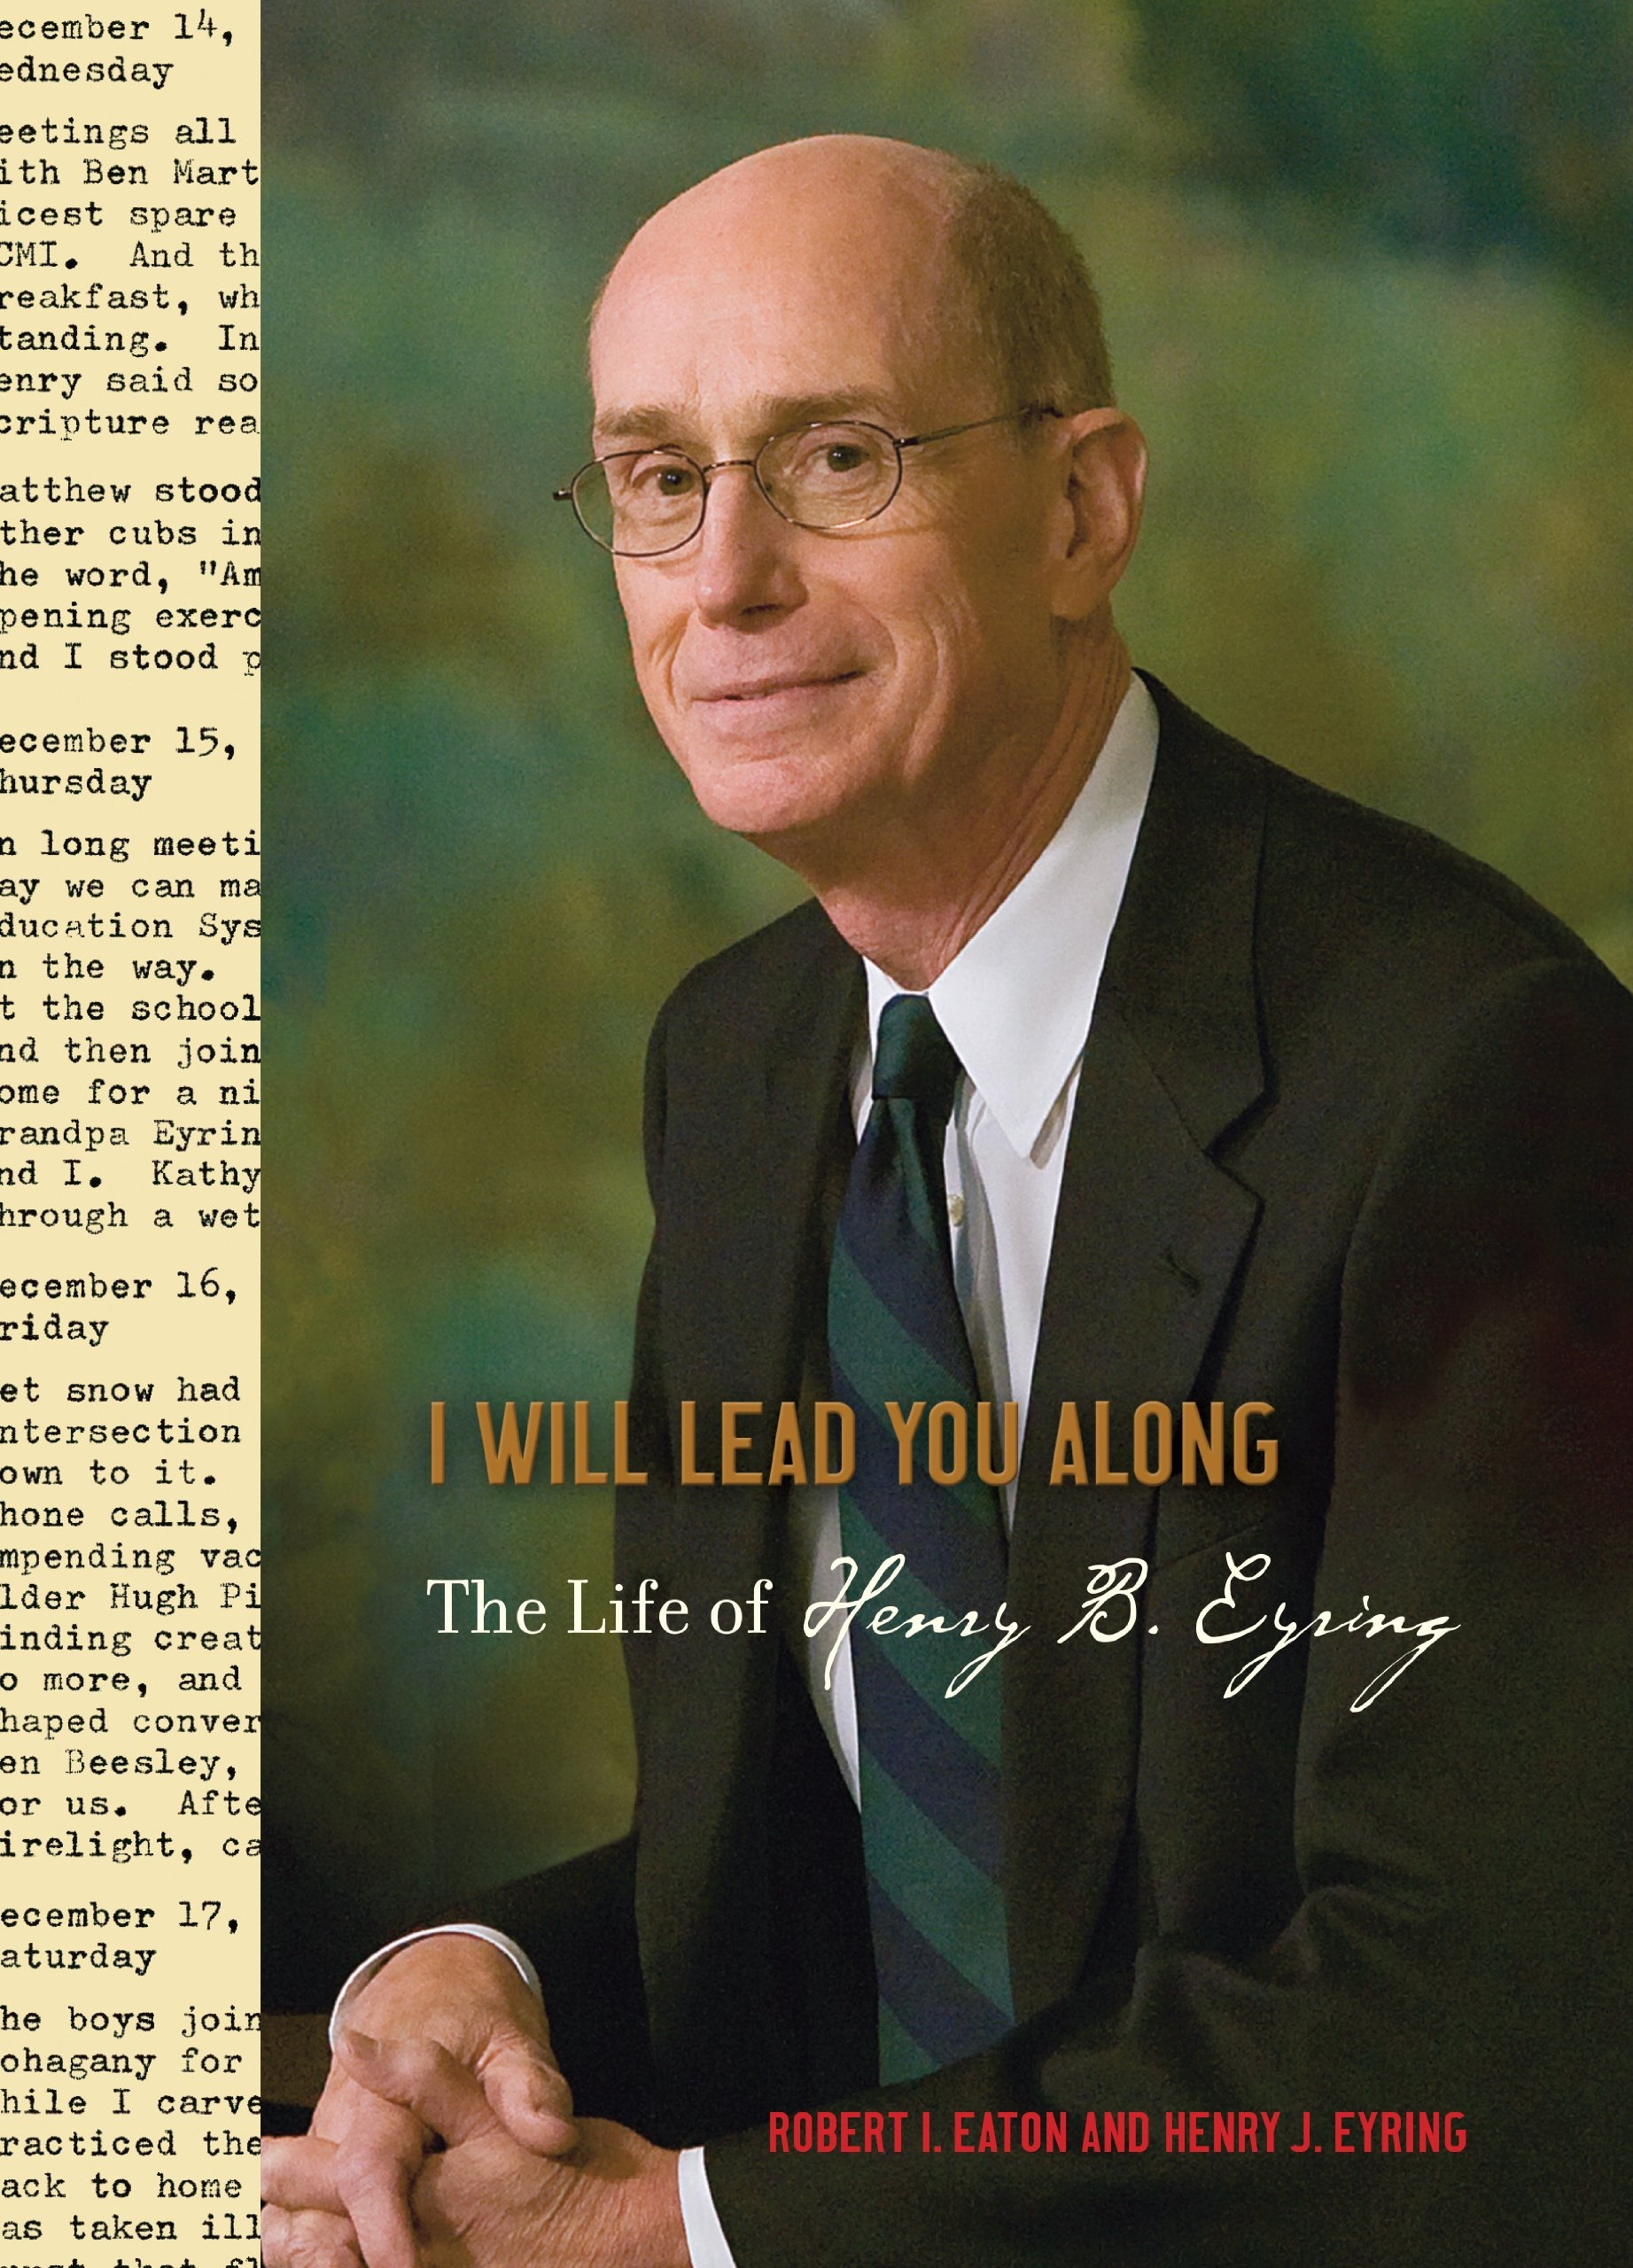 I Will Lead You Along: The Life of Henry B. Eyring, Eyring, Henry J. and Robert I. Eaton